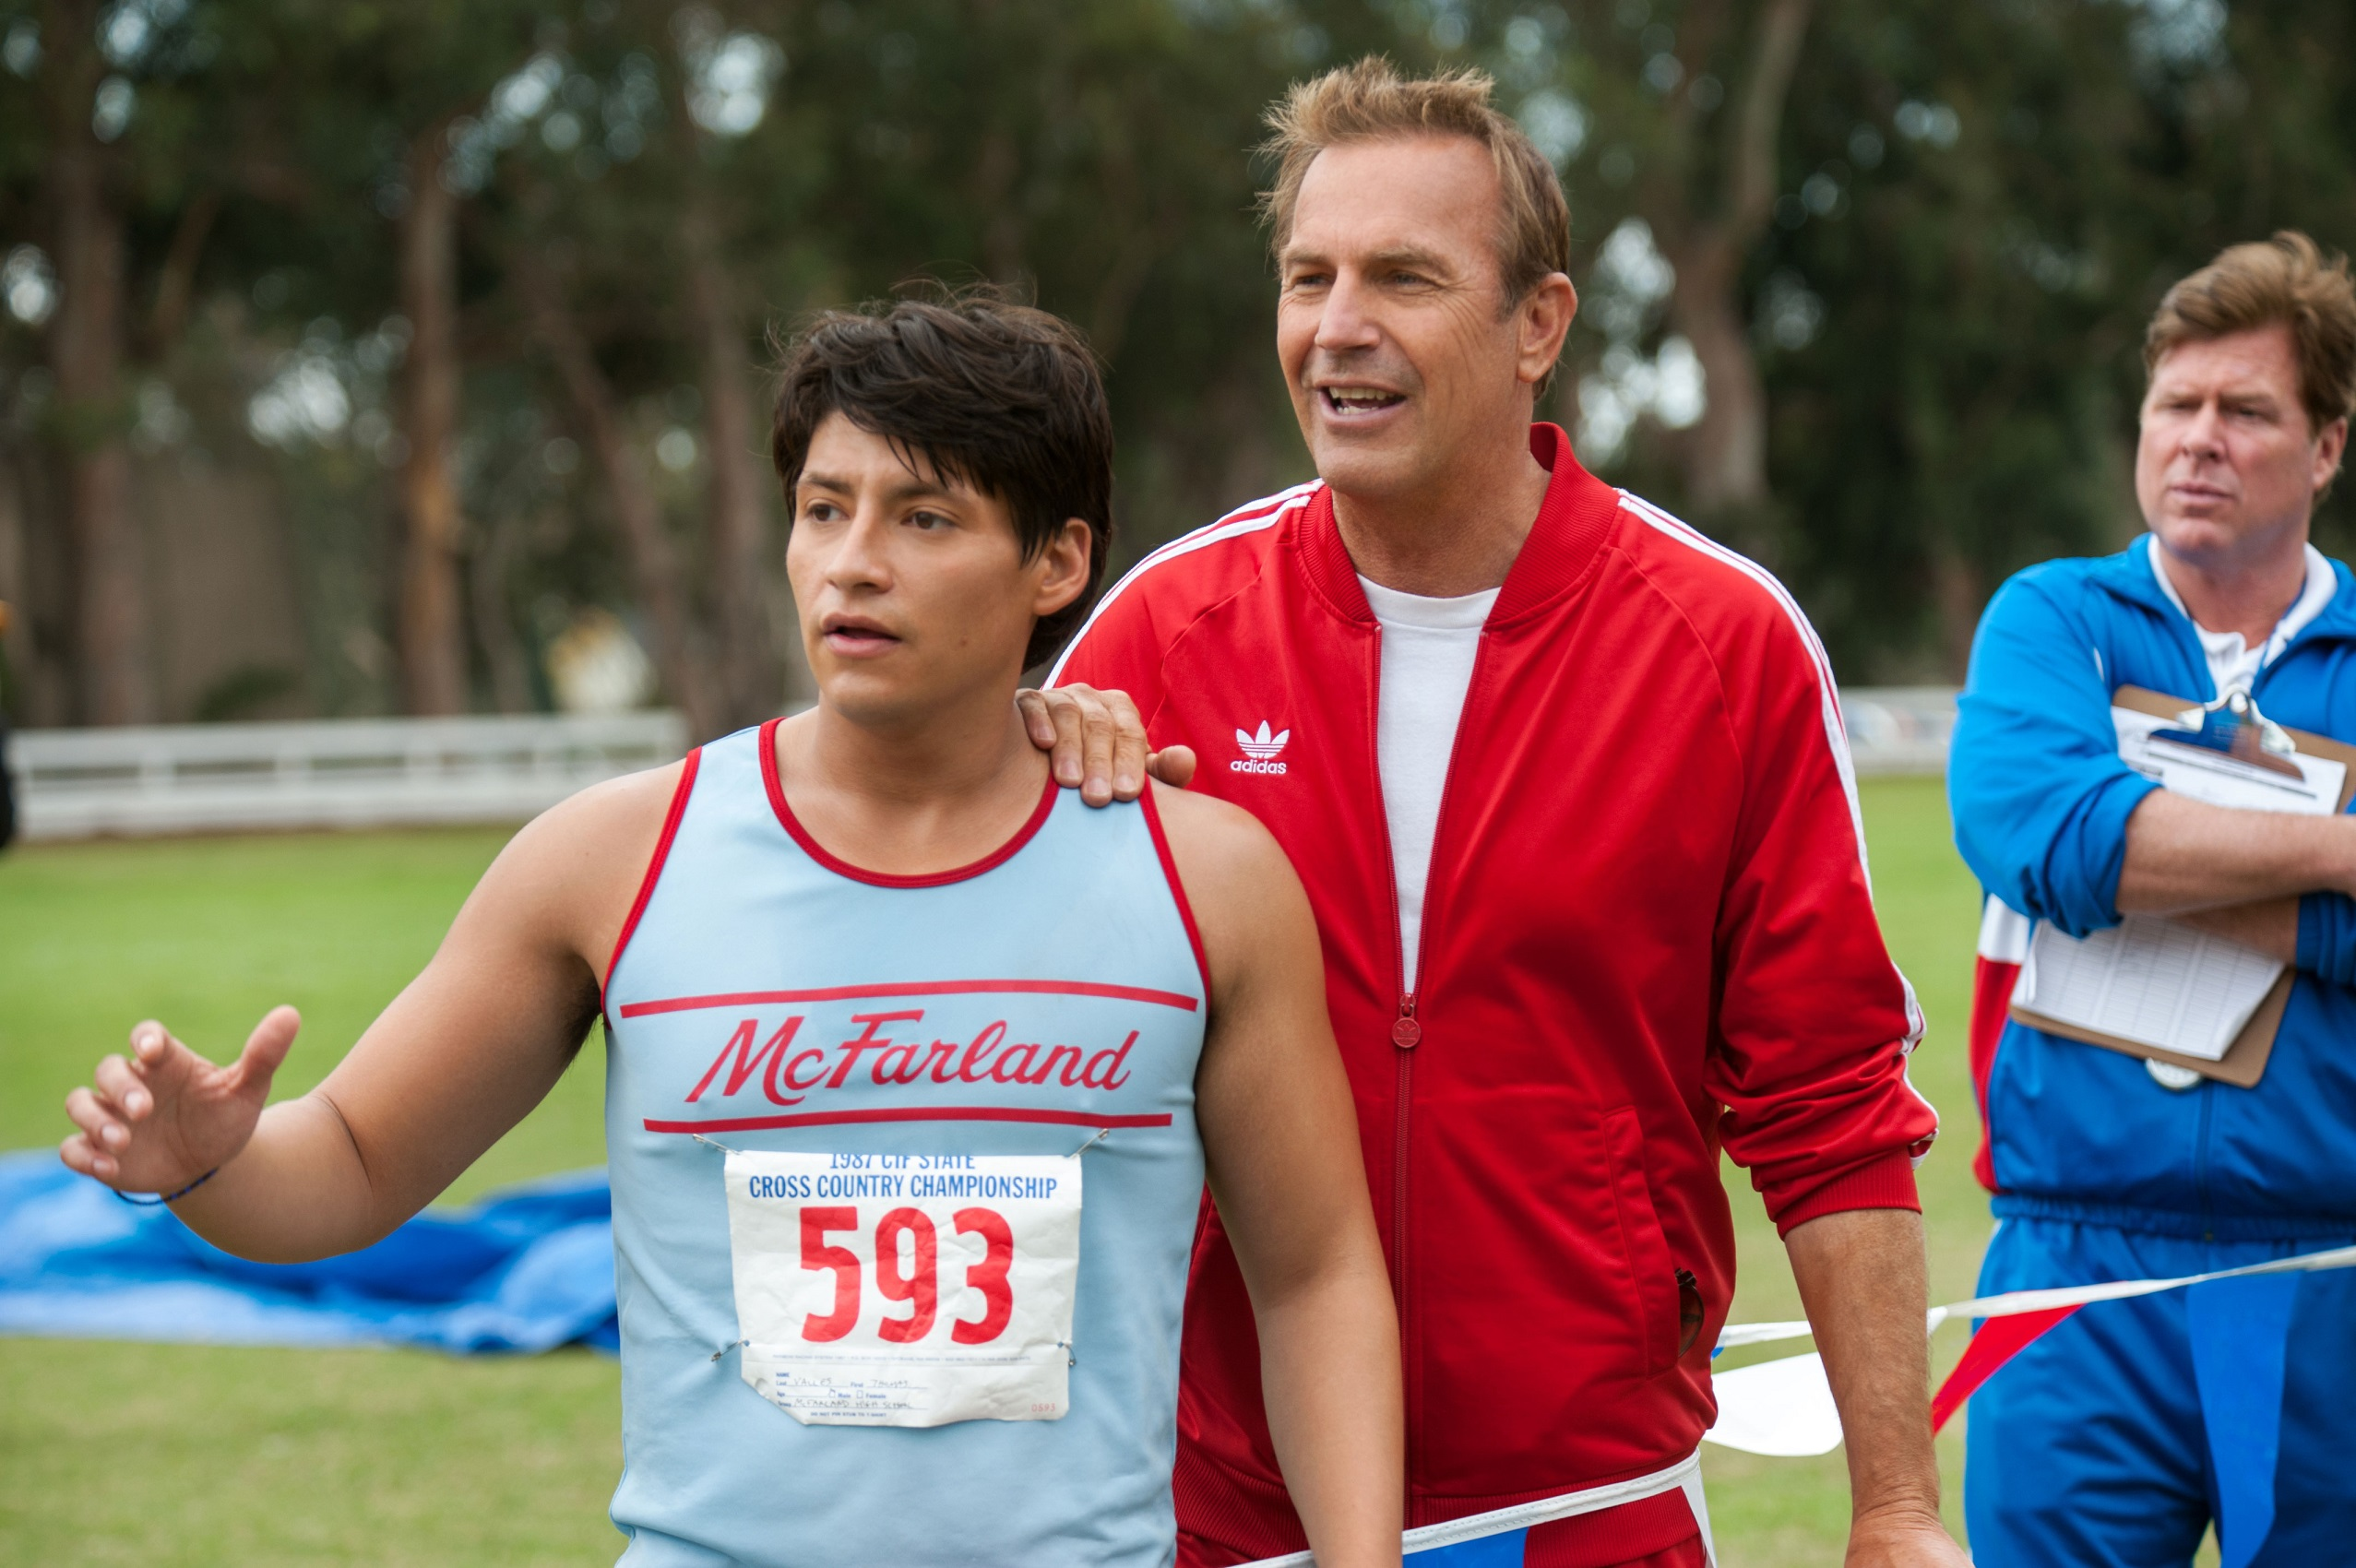 MCFARLAND USA-Official Poster Banner PHOTOS-04NOVEMBRO2014-03